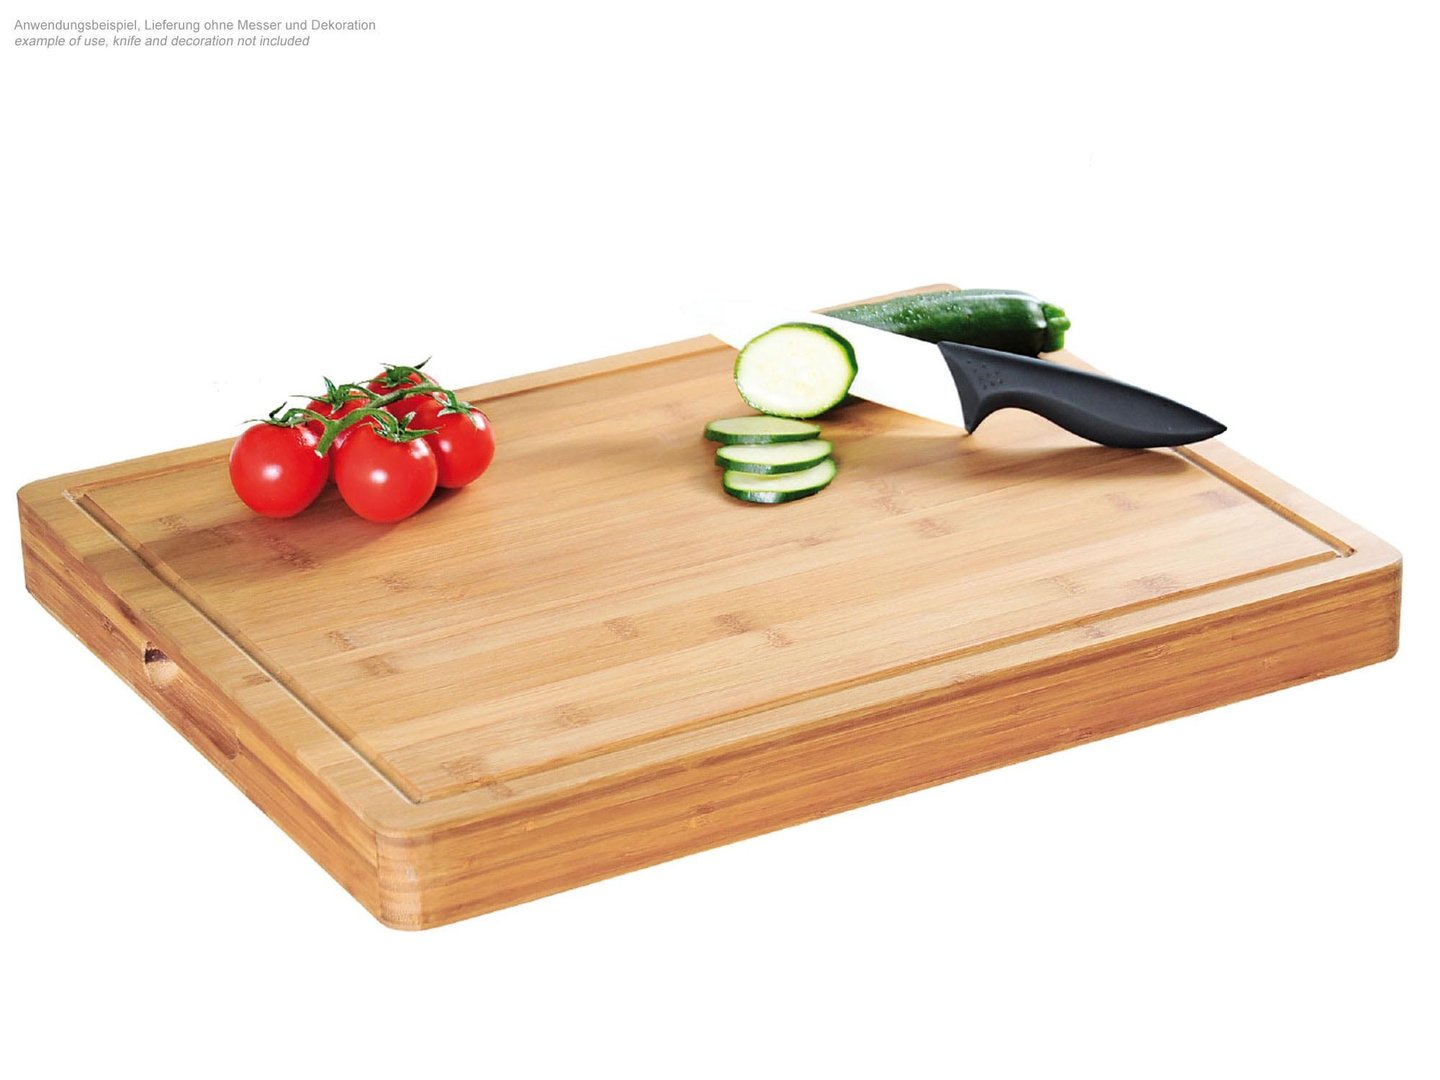 KESPER bamboo cutting board 50 x 40 x 5 cm with juice rim